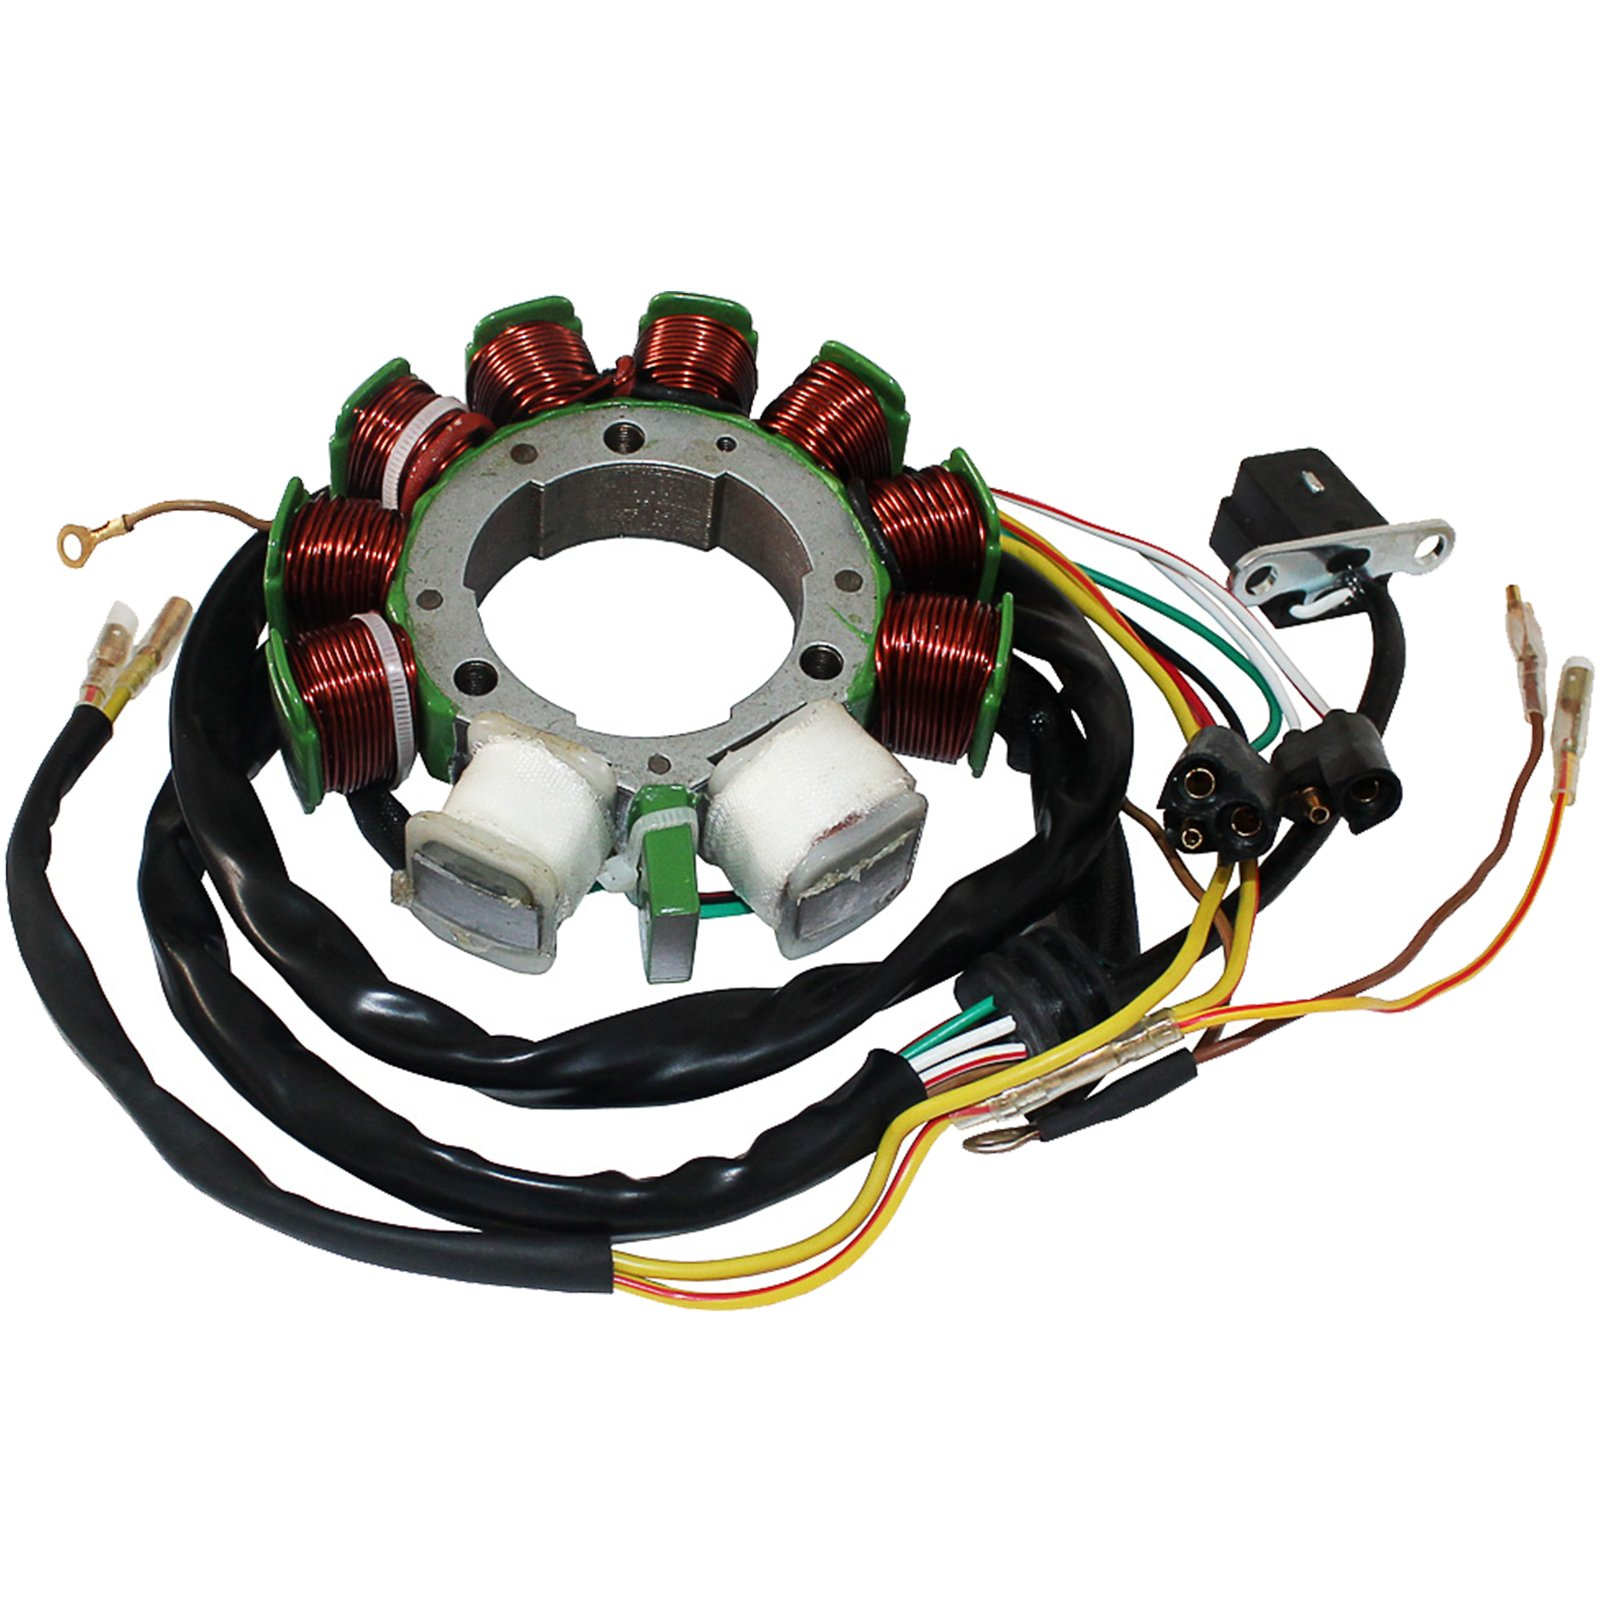 CALTRIC Stator FITS POLARIS SPORTSMAN 500 1998 1999 2000 by Caltric